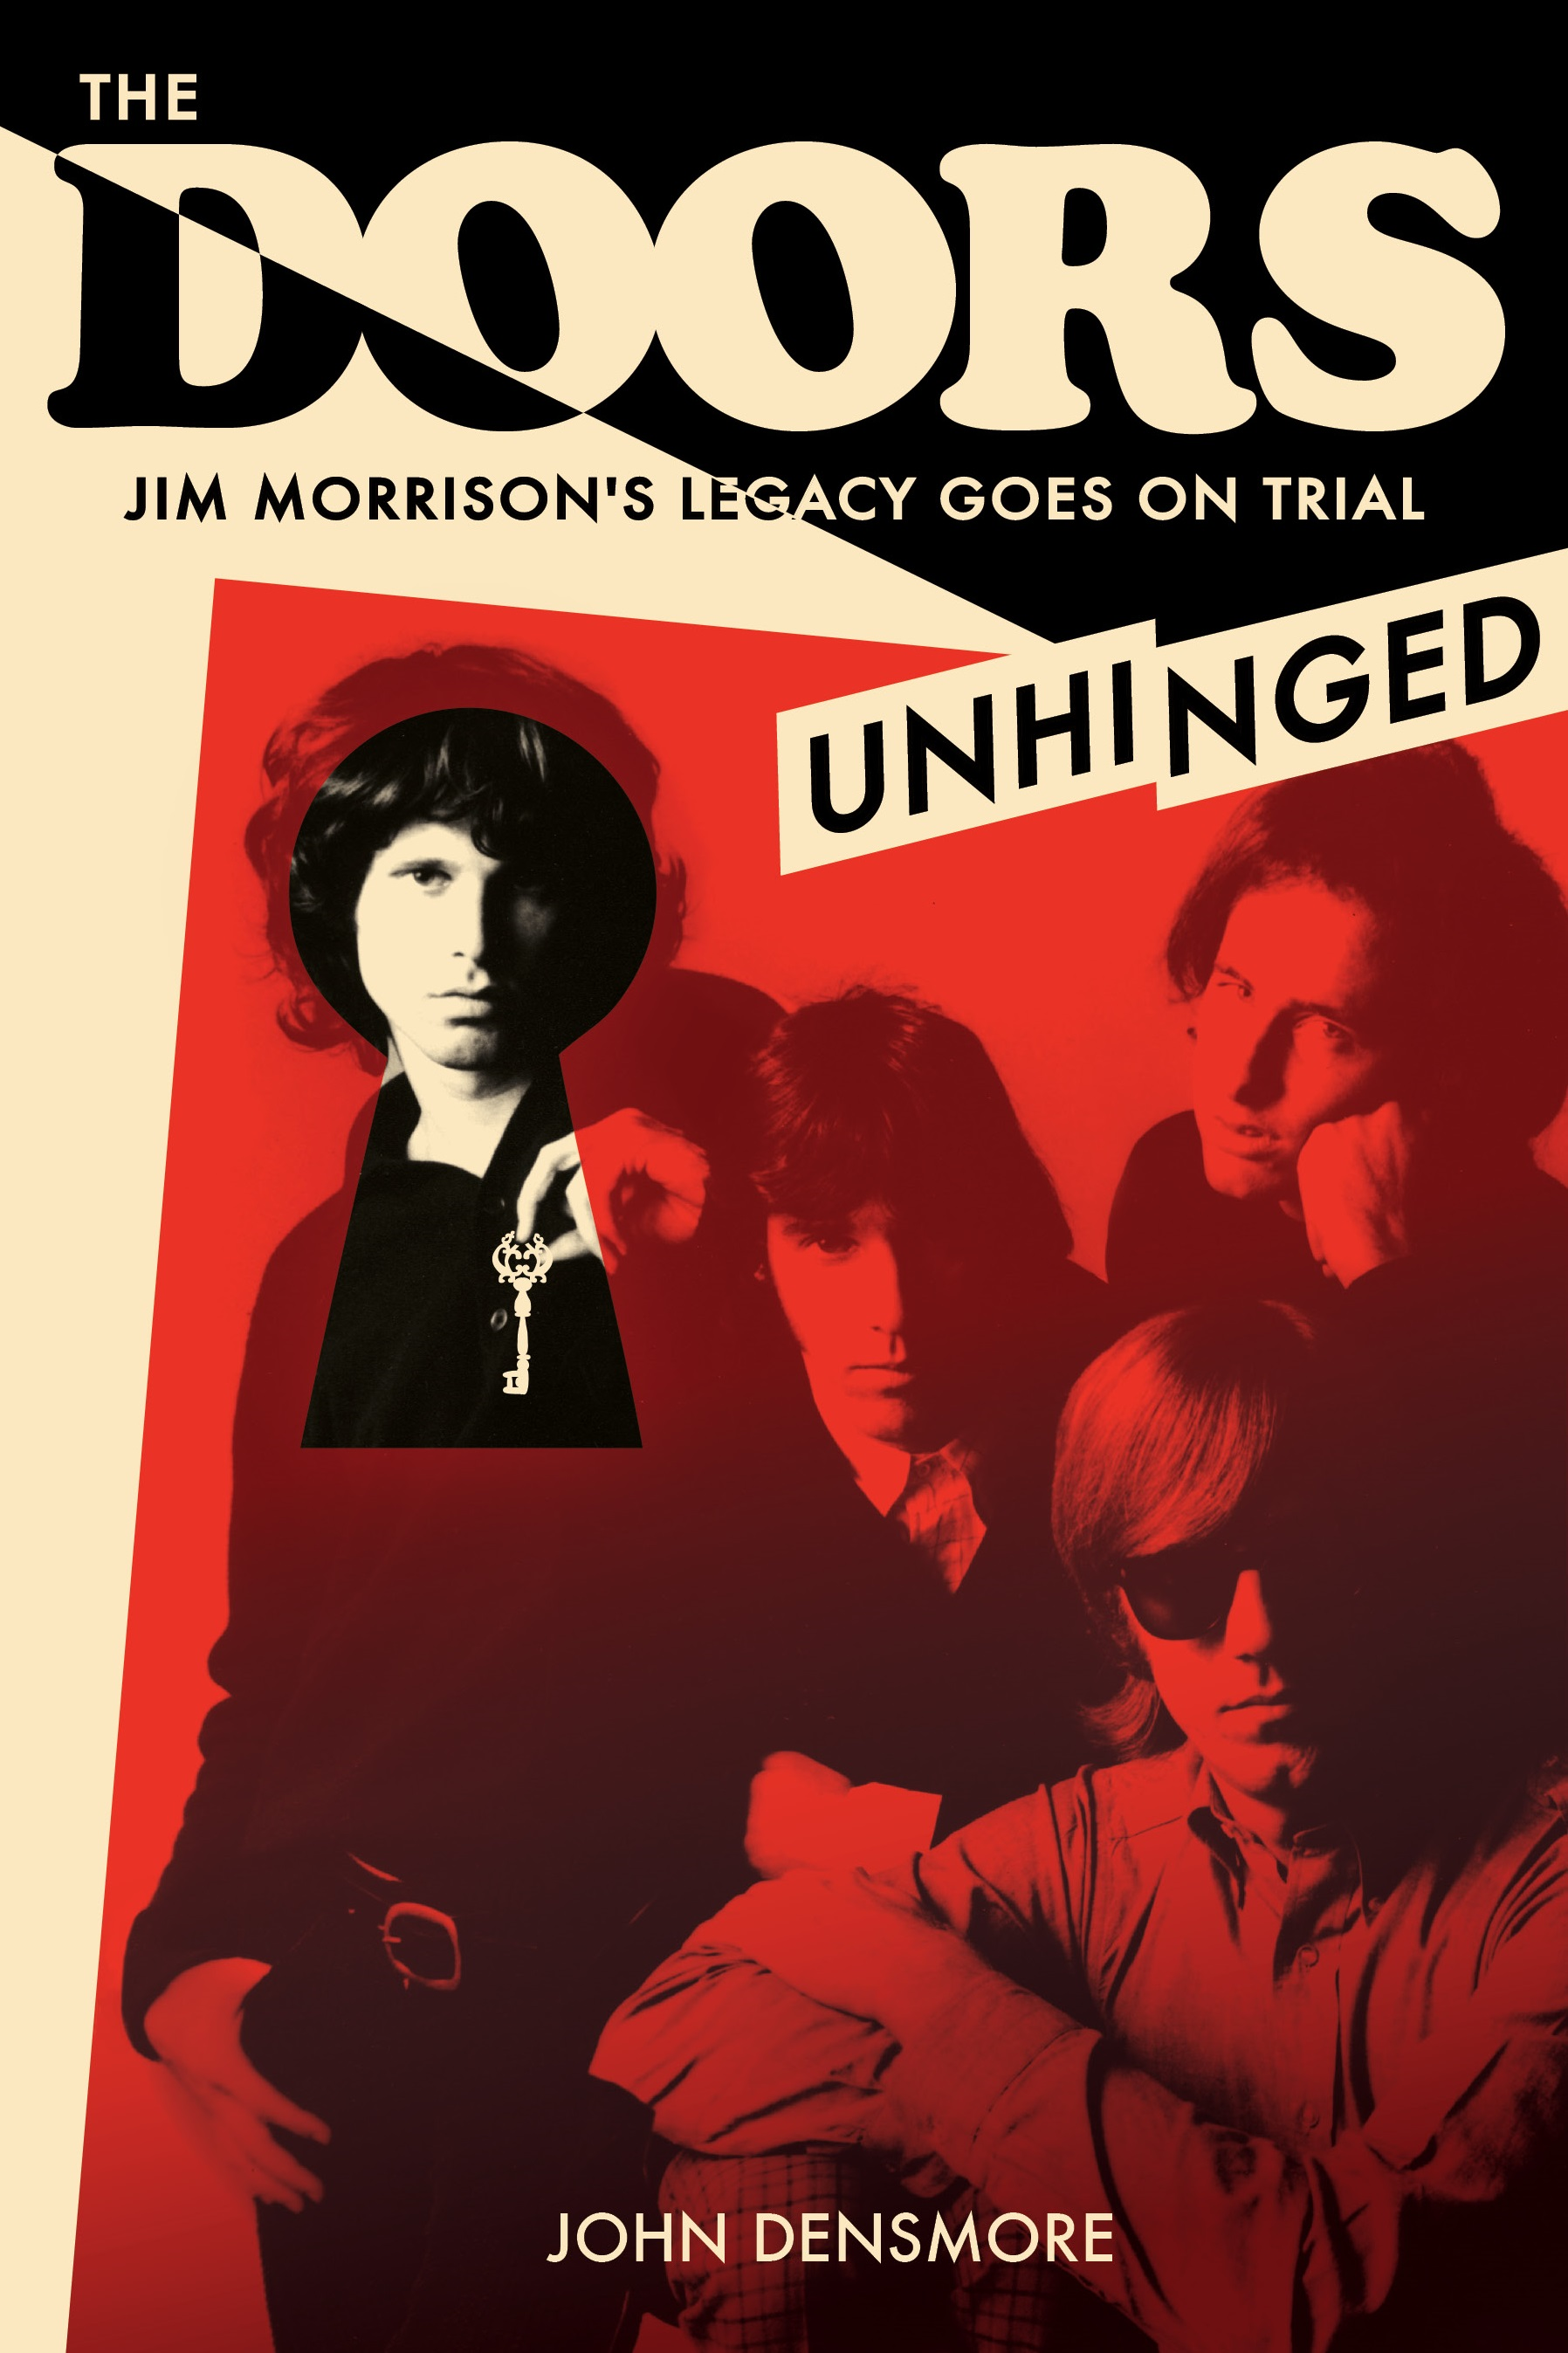 The Doors Unhinged